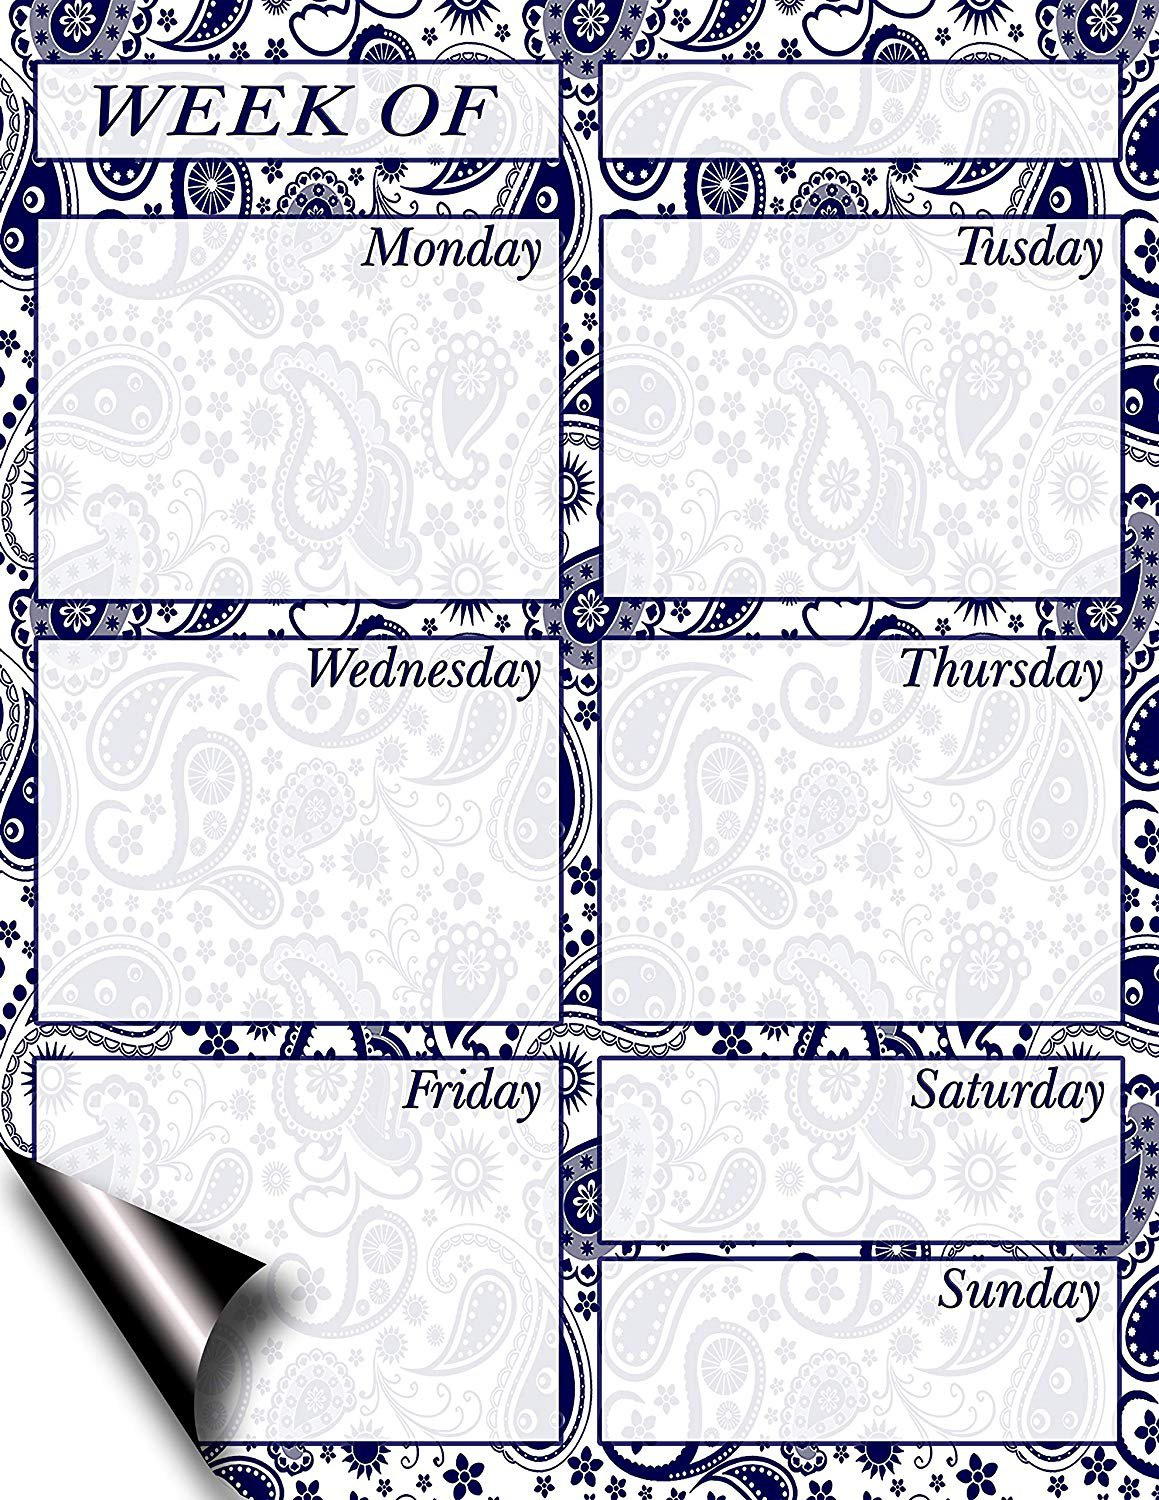 Chore Chart/Weekly Planner/to Do List/Message Board - (Edition #10) (Weekly Planner)